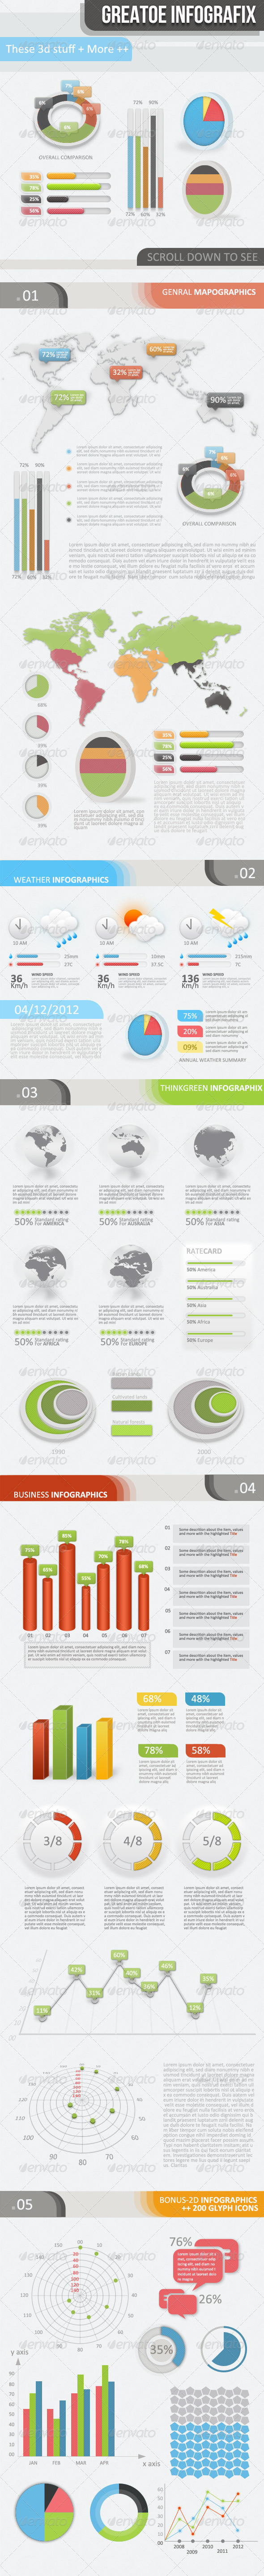 3D - 2D Infographic Elements Kit - Infographics